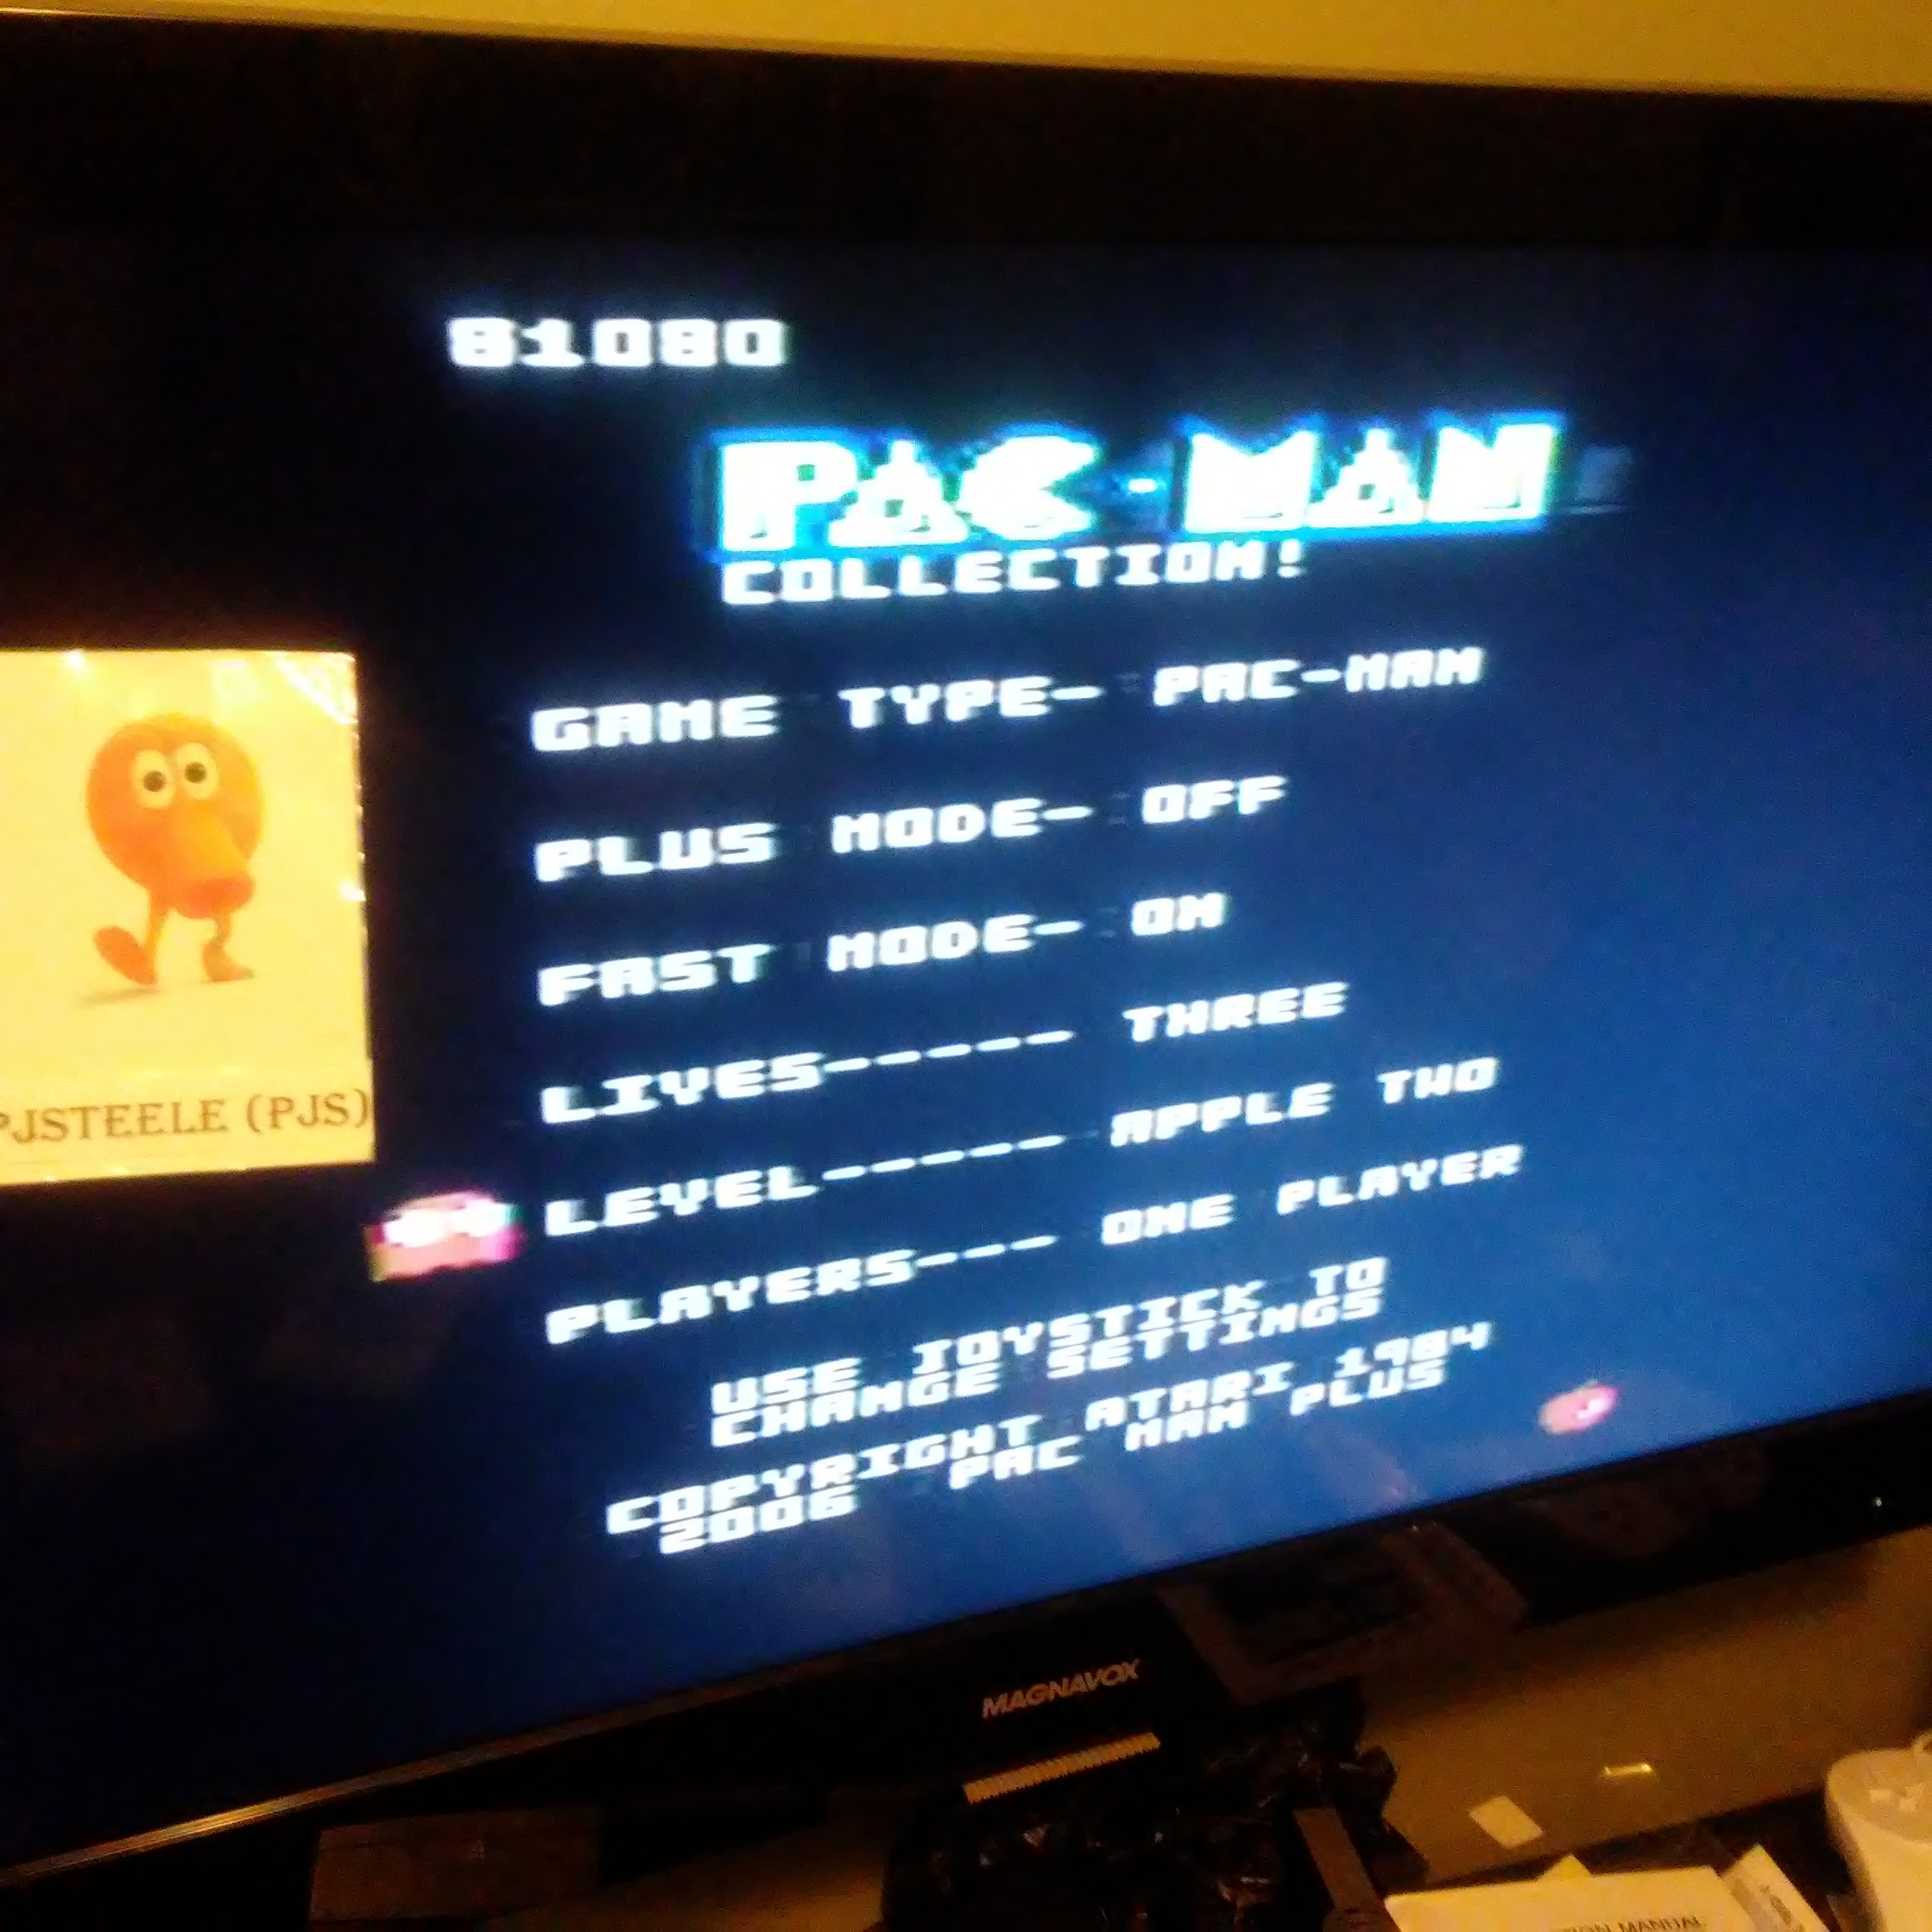 Pac-Man Collection: Pac-Man [Apple Two/Plus Off/Fast On] 81,080 points